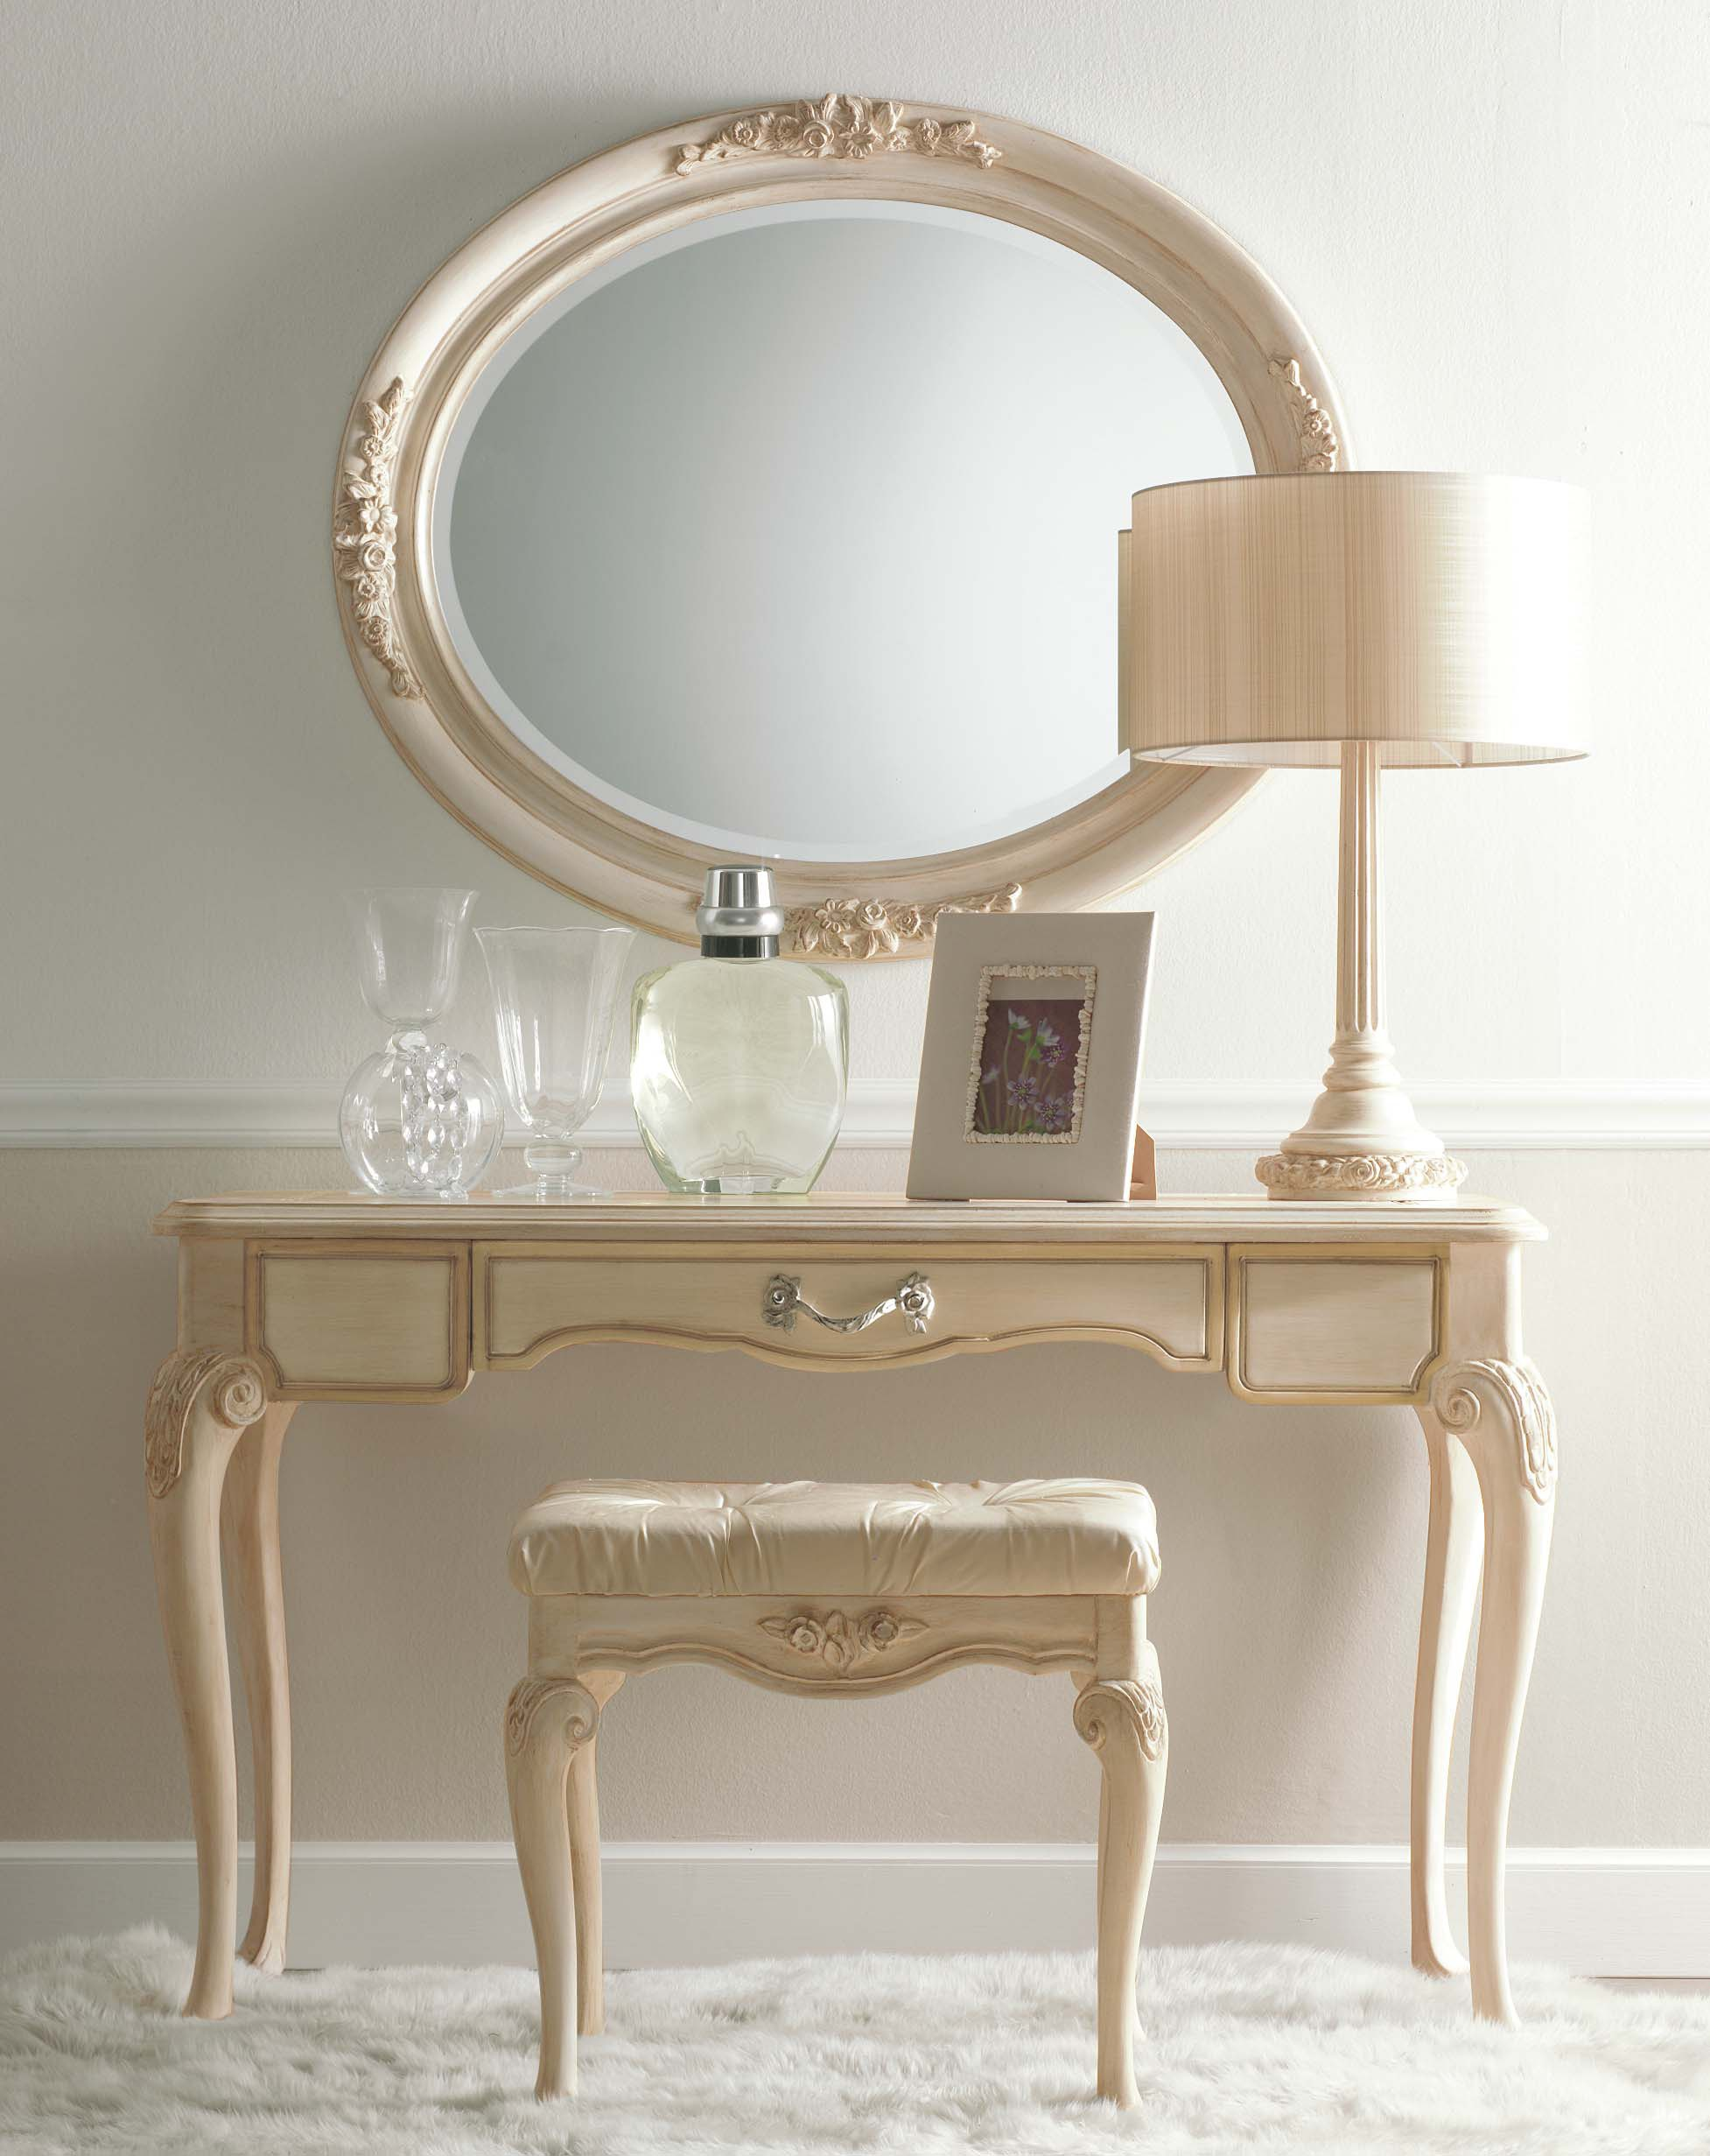 Dressing Table Solid Wood Ambiente Notte Savio Firmino